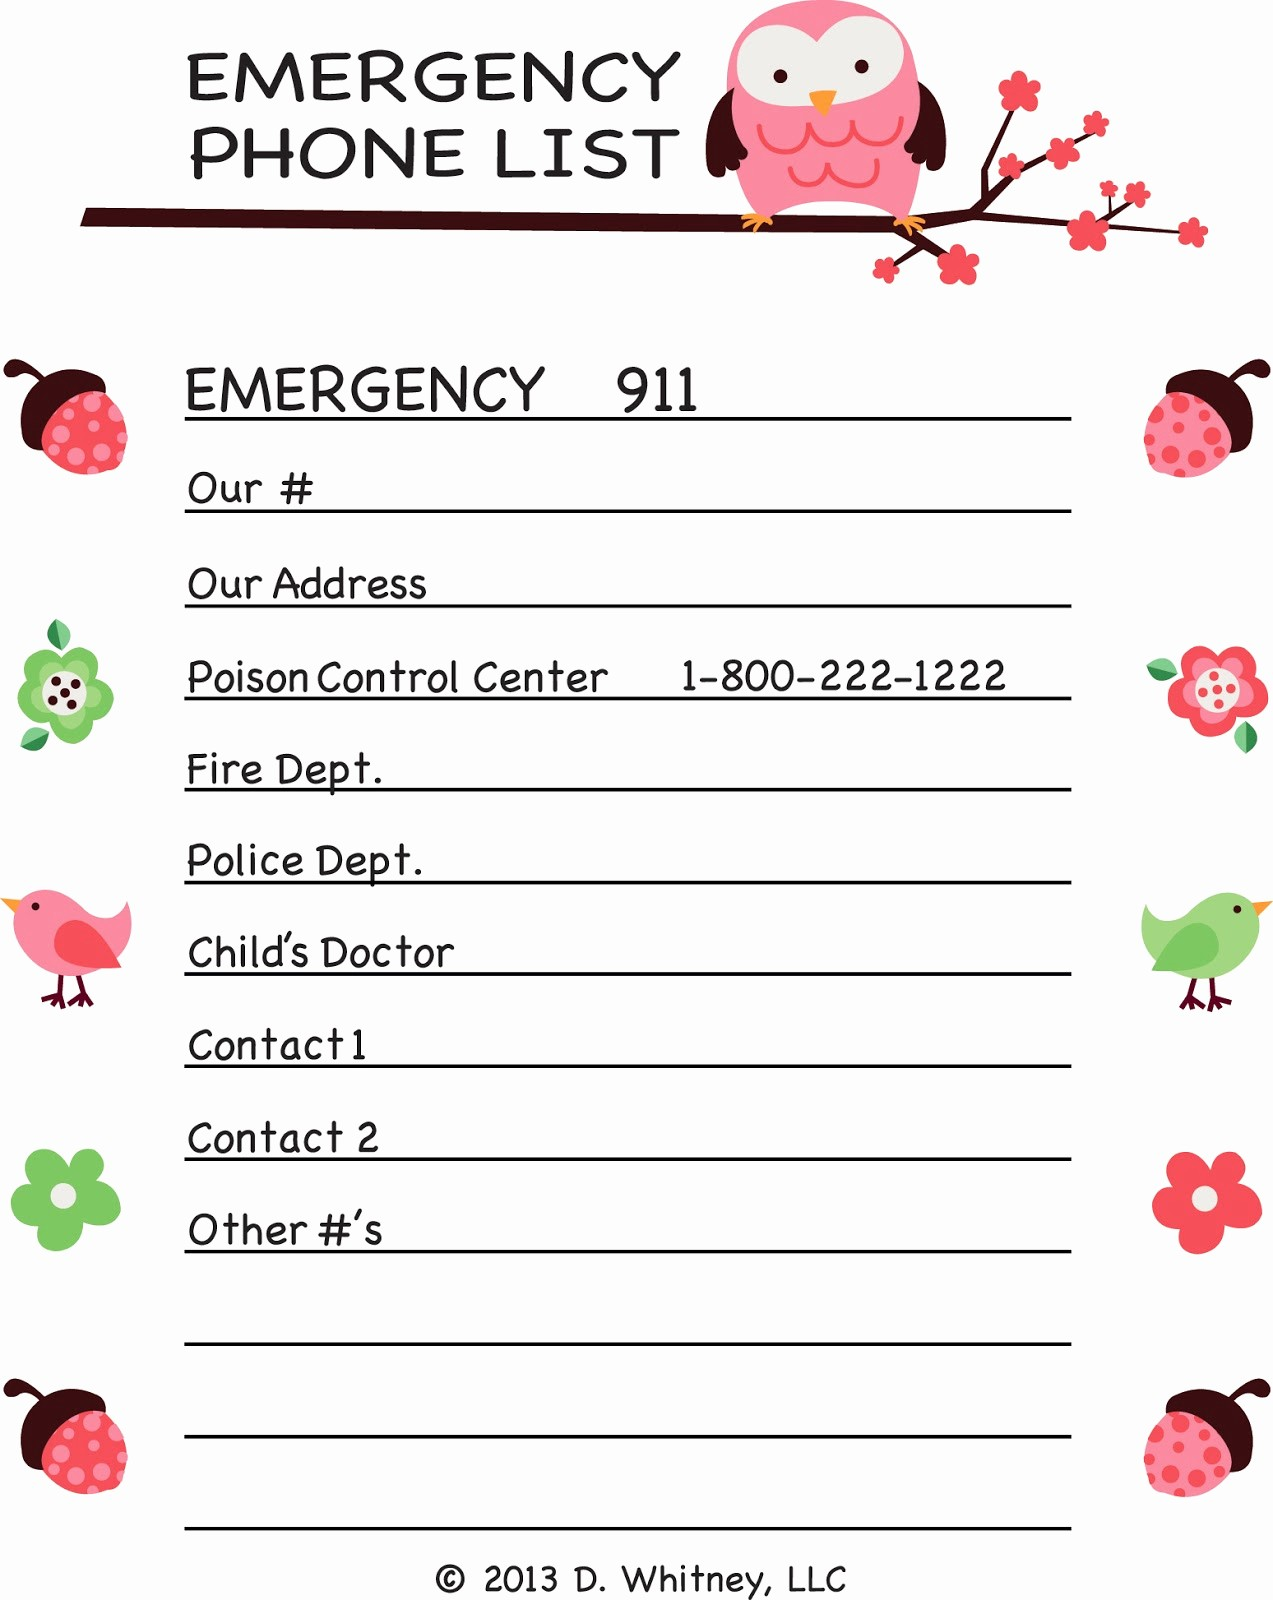 Emergency Contact List for Nanny Unique Parking Pal Emergency Phone List